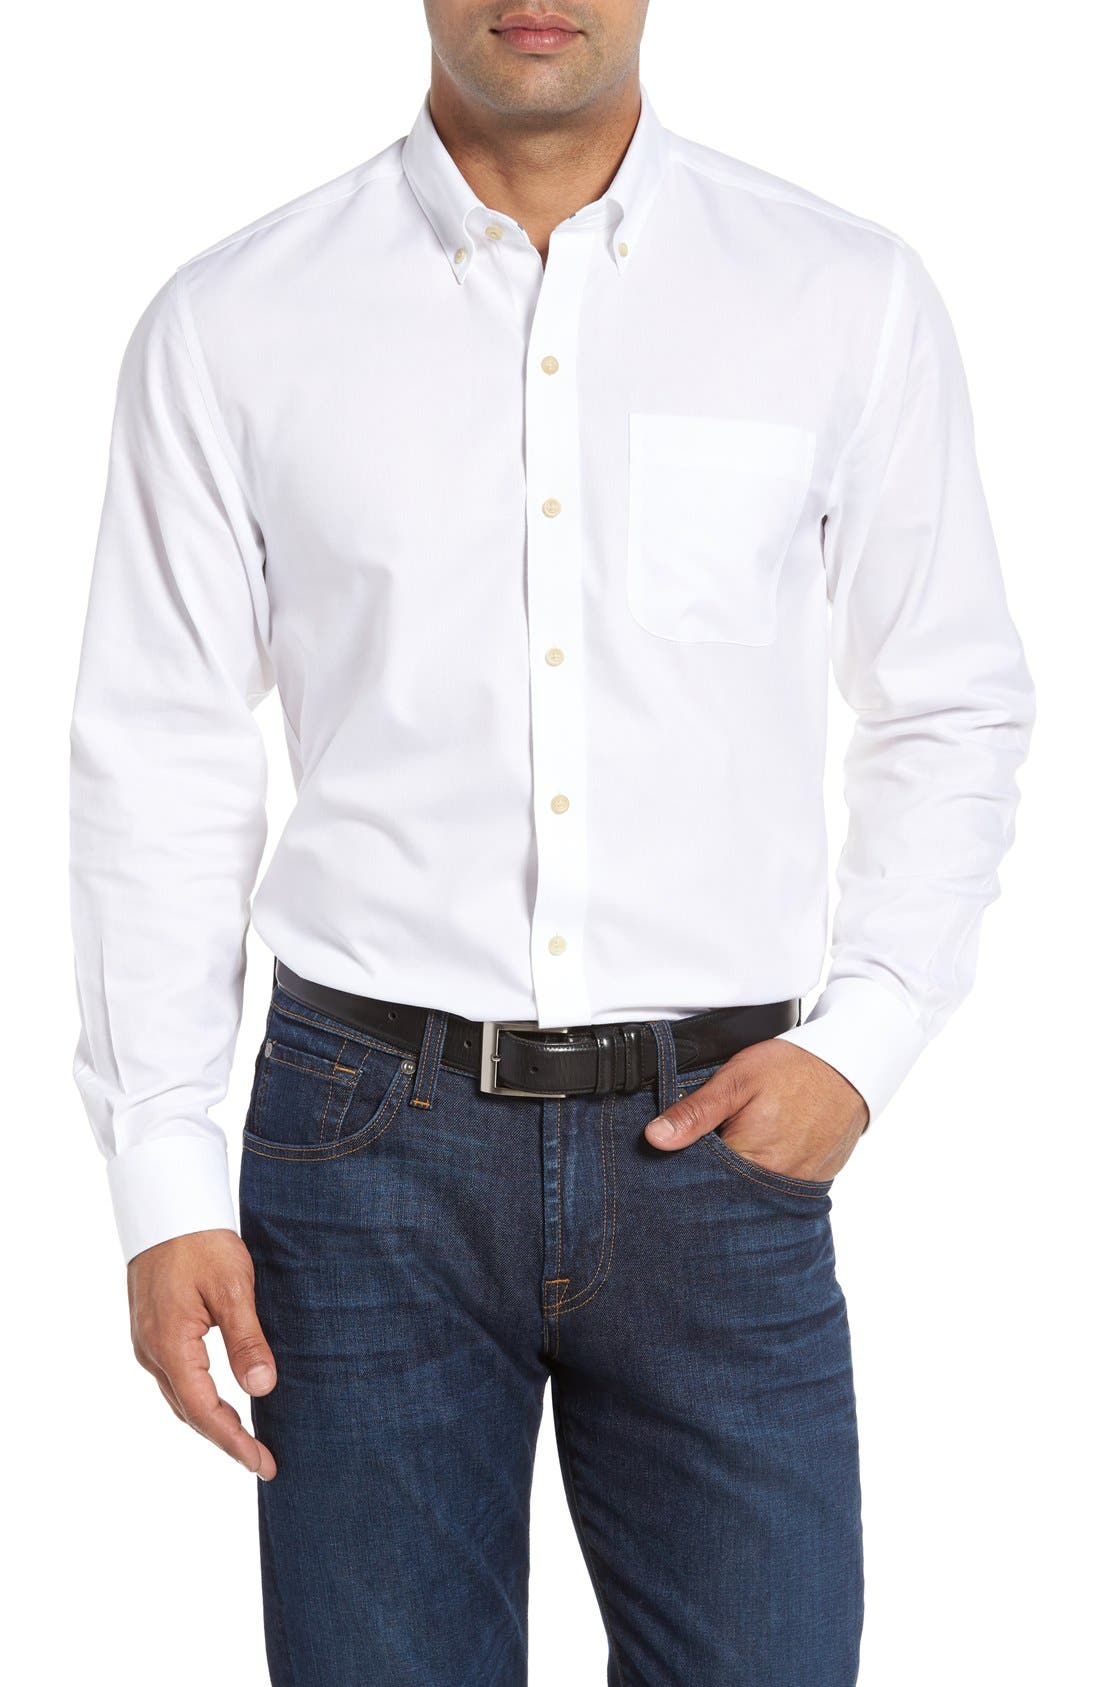 San Juan Classic Fit Wrinkle Free Solid Sport Shirt,                         Main,                         color, White